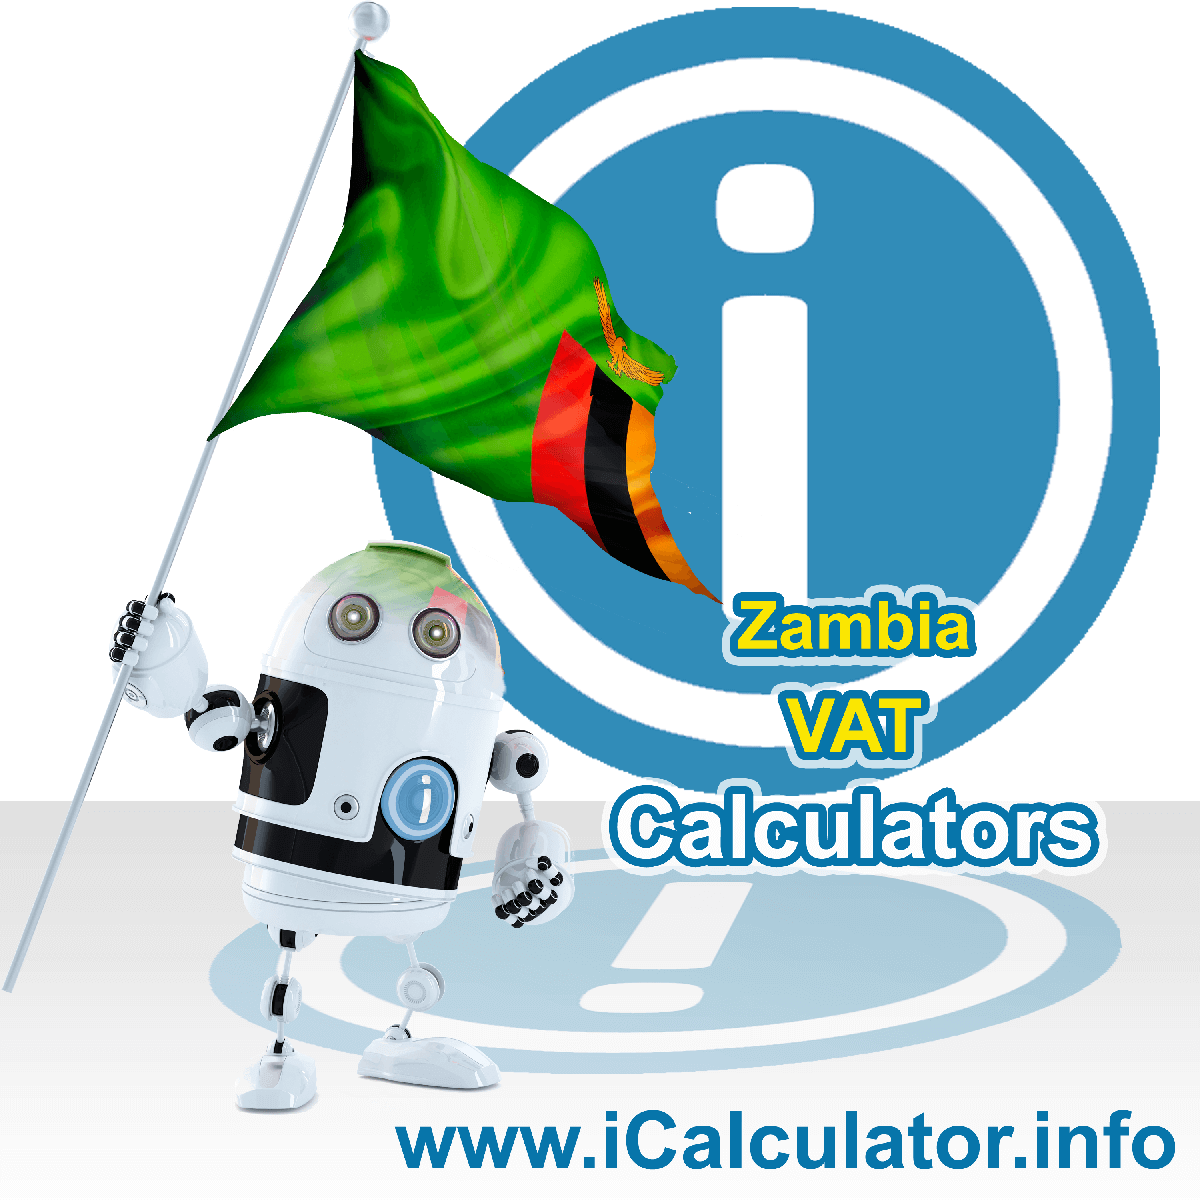 Zambia VAT Calculator. This image shows the Zambia flag and information relating to the VAT formula used for calculating Value Added Tax in Zambia using the Zambia VAT Calculator in 2021